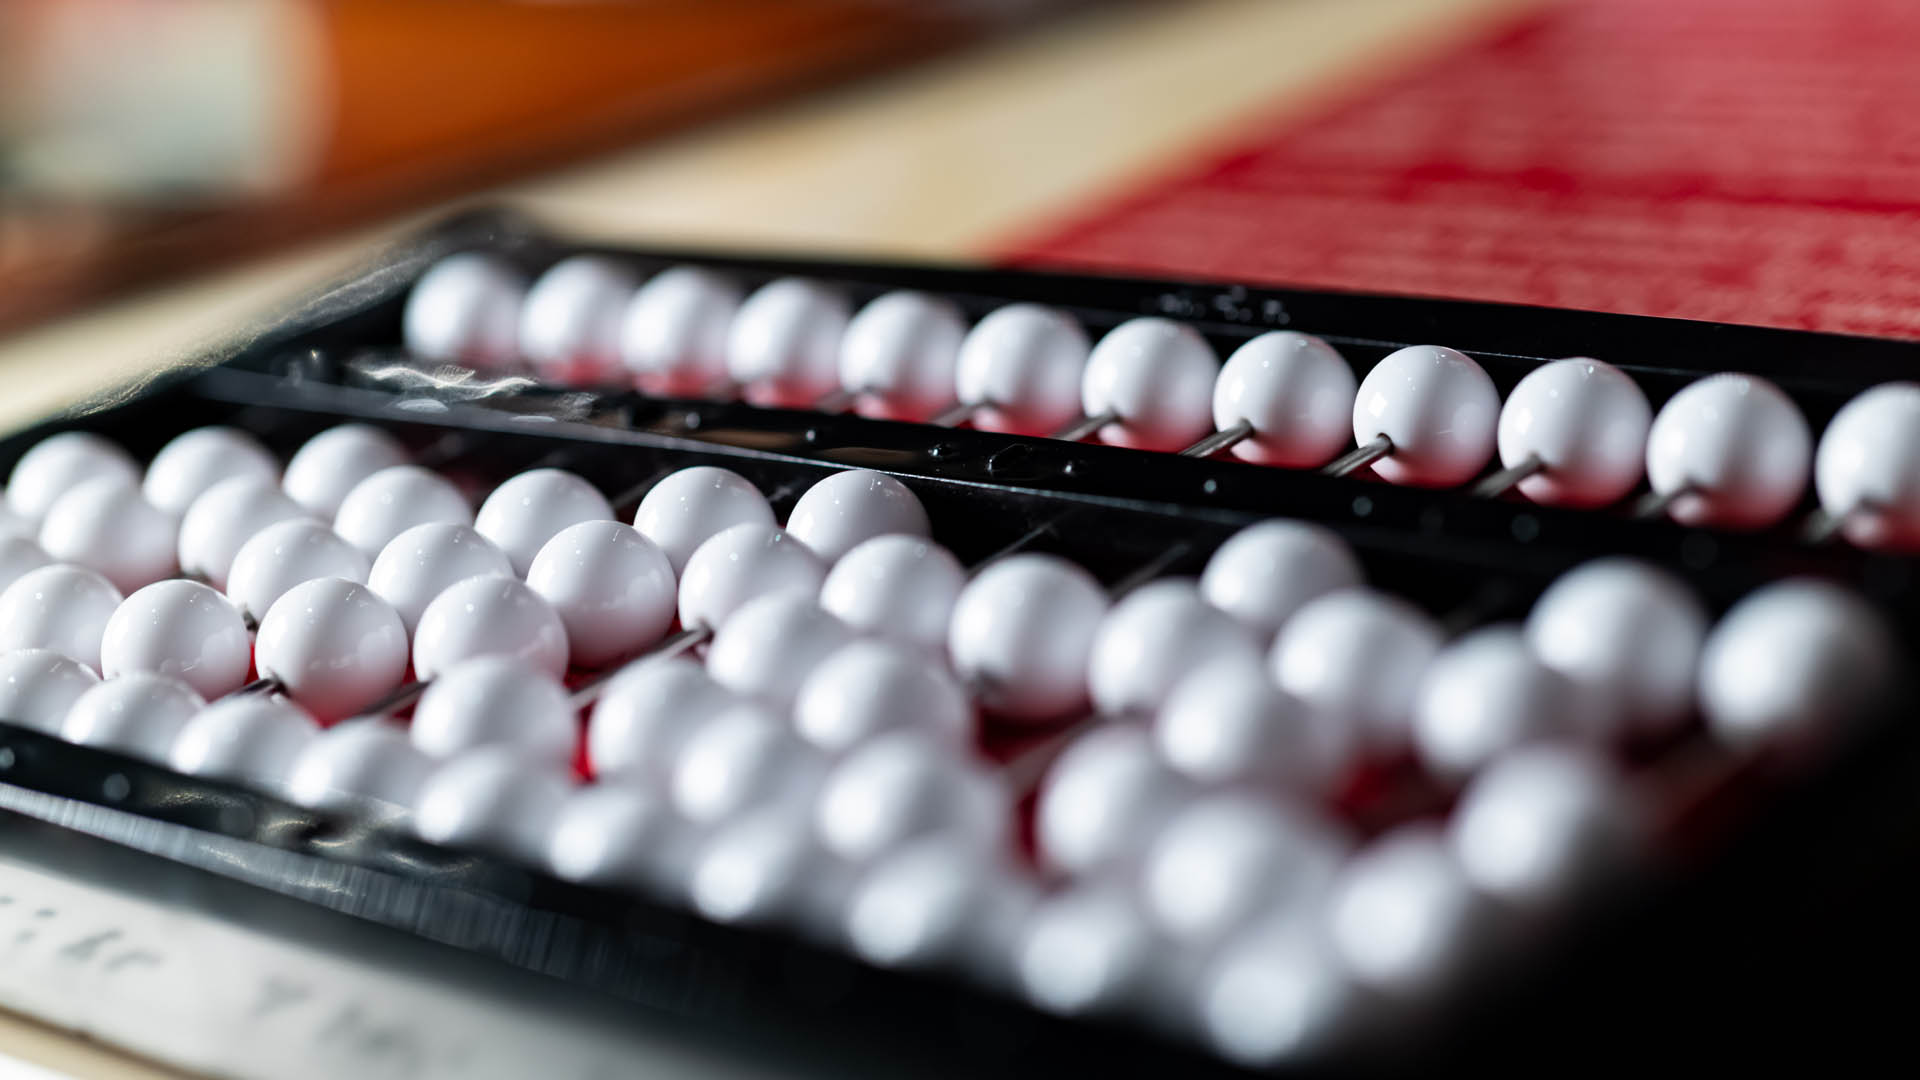 Closeup view of white plastic beads on an abacus